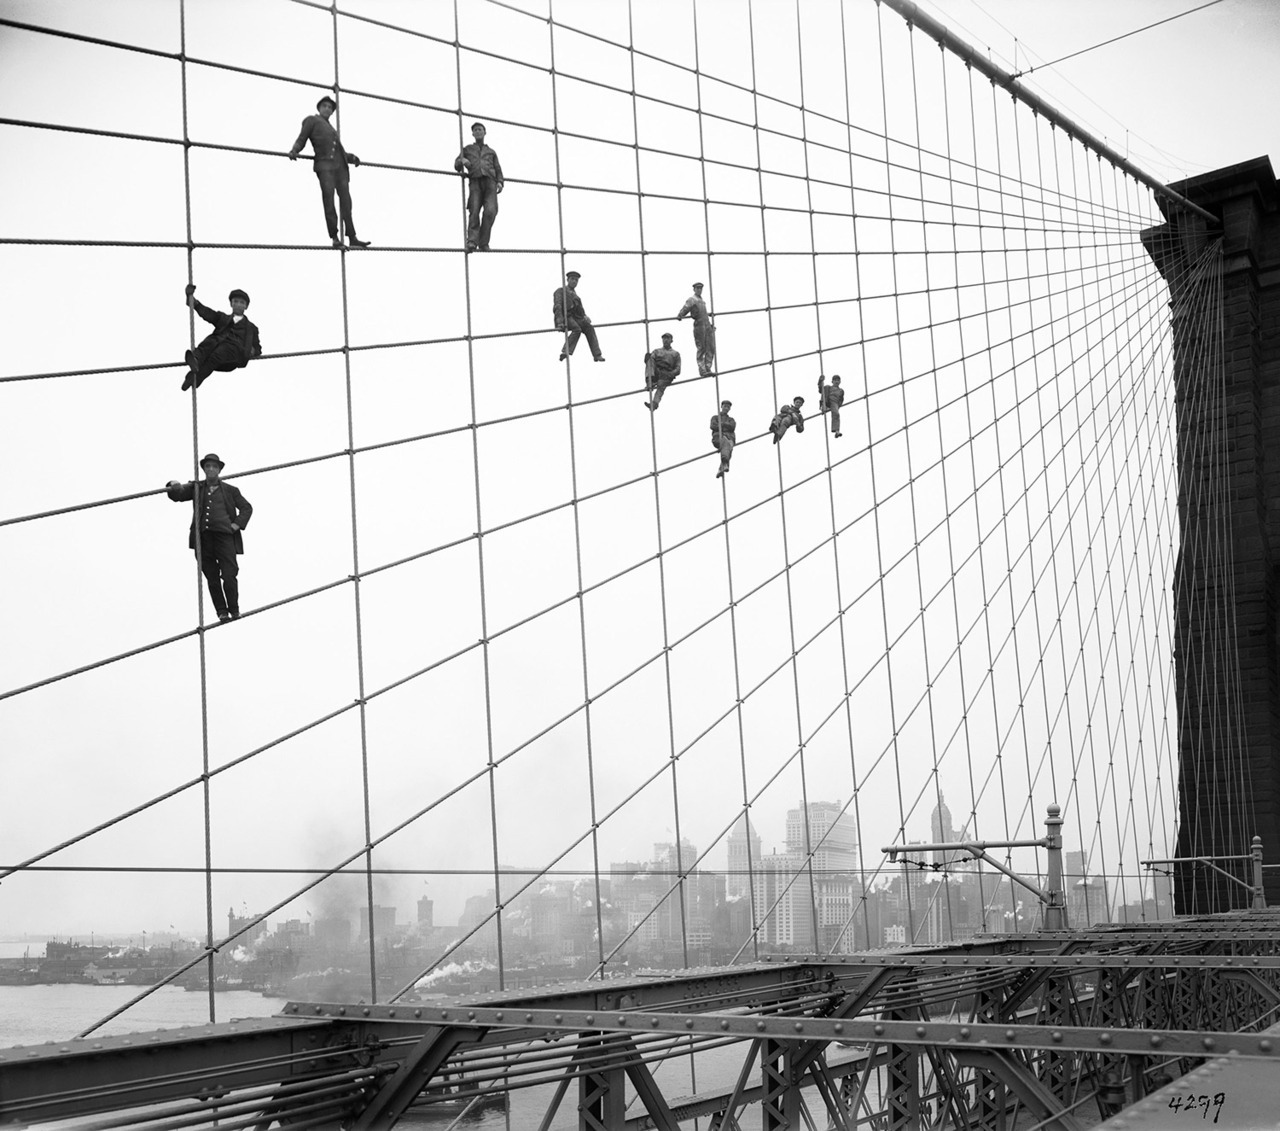 The Brooklyn Bridge opened to the public on May 24, 1883.  Photographs of the work-in-progress bridge, like this one by Eugene de Salignac, are now available to the public through the New York City Municipal Archives. See more here.